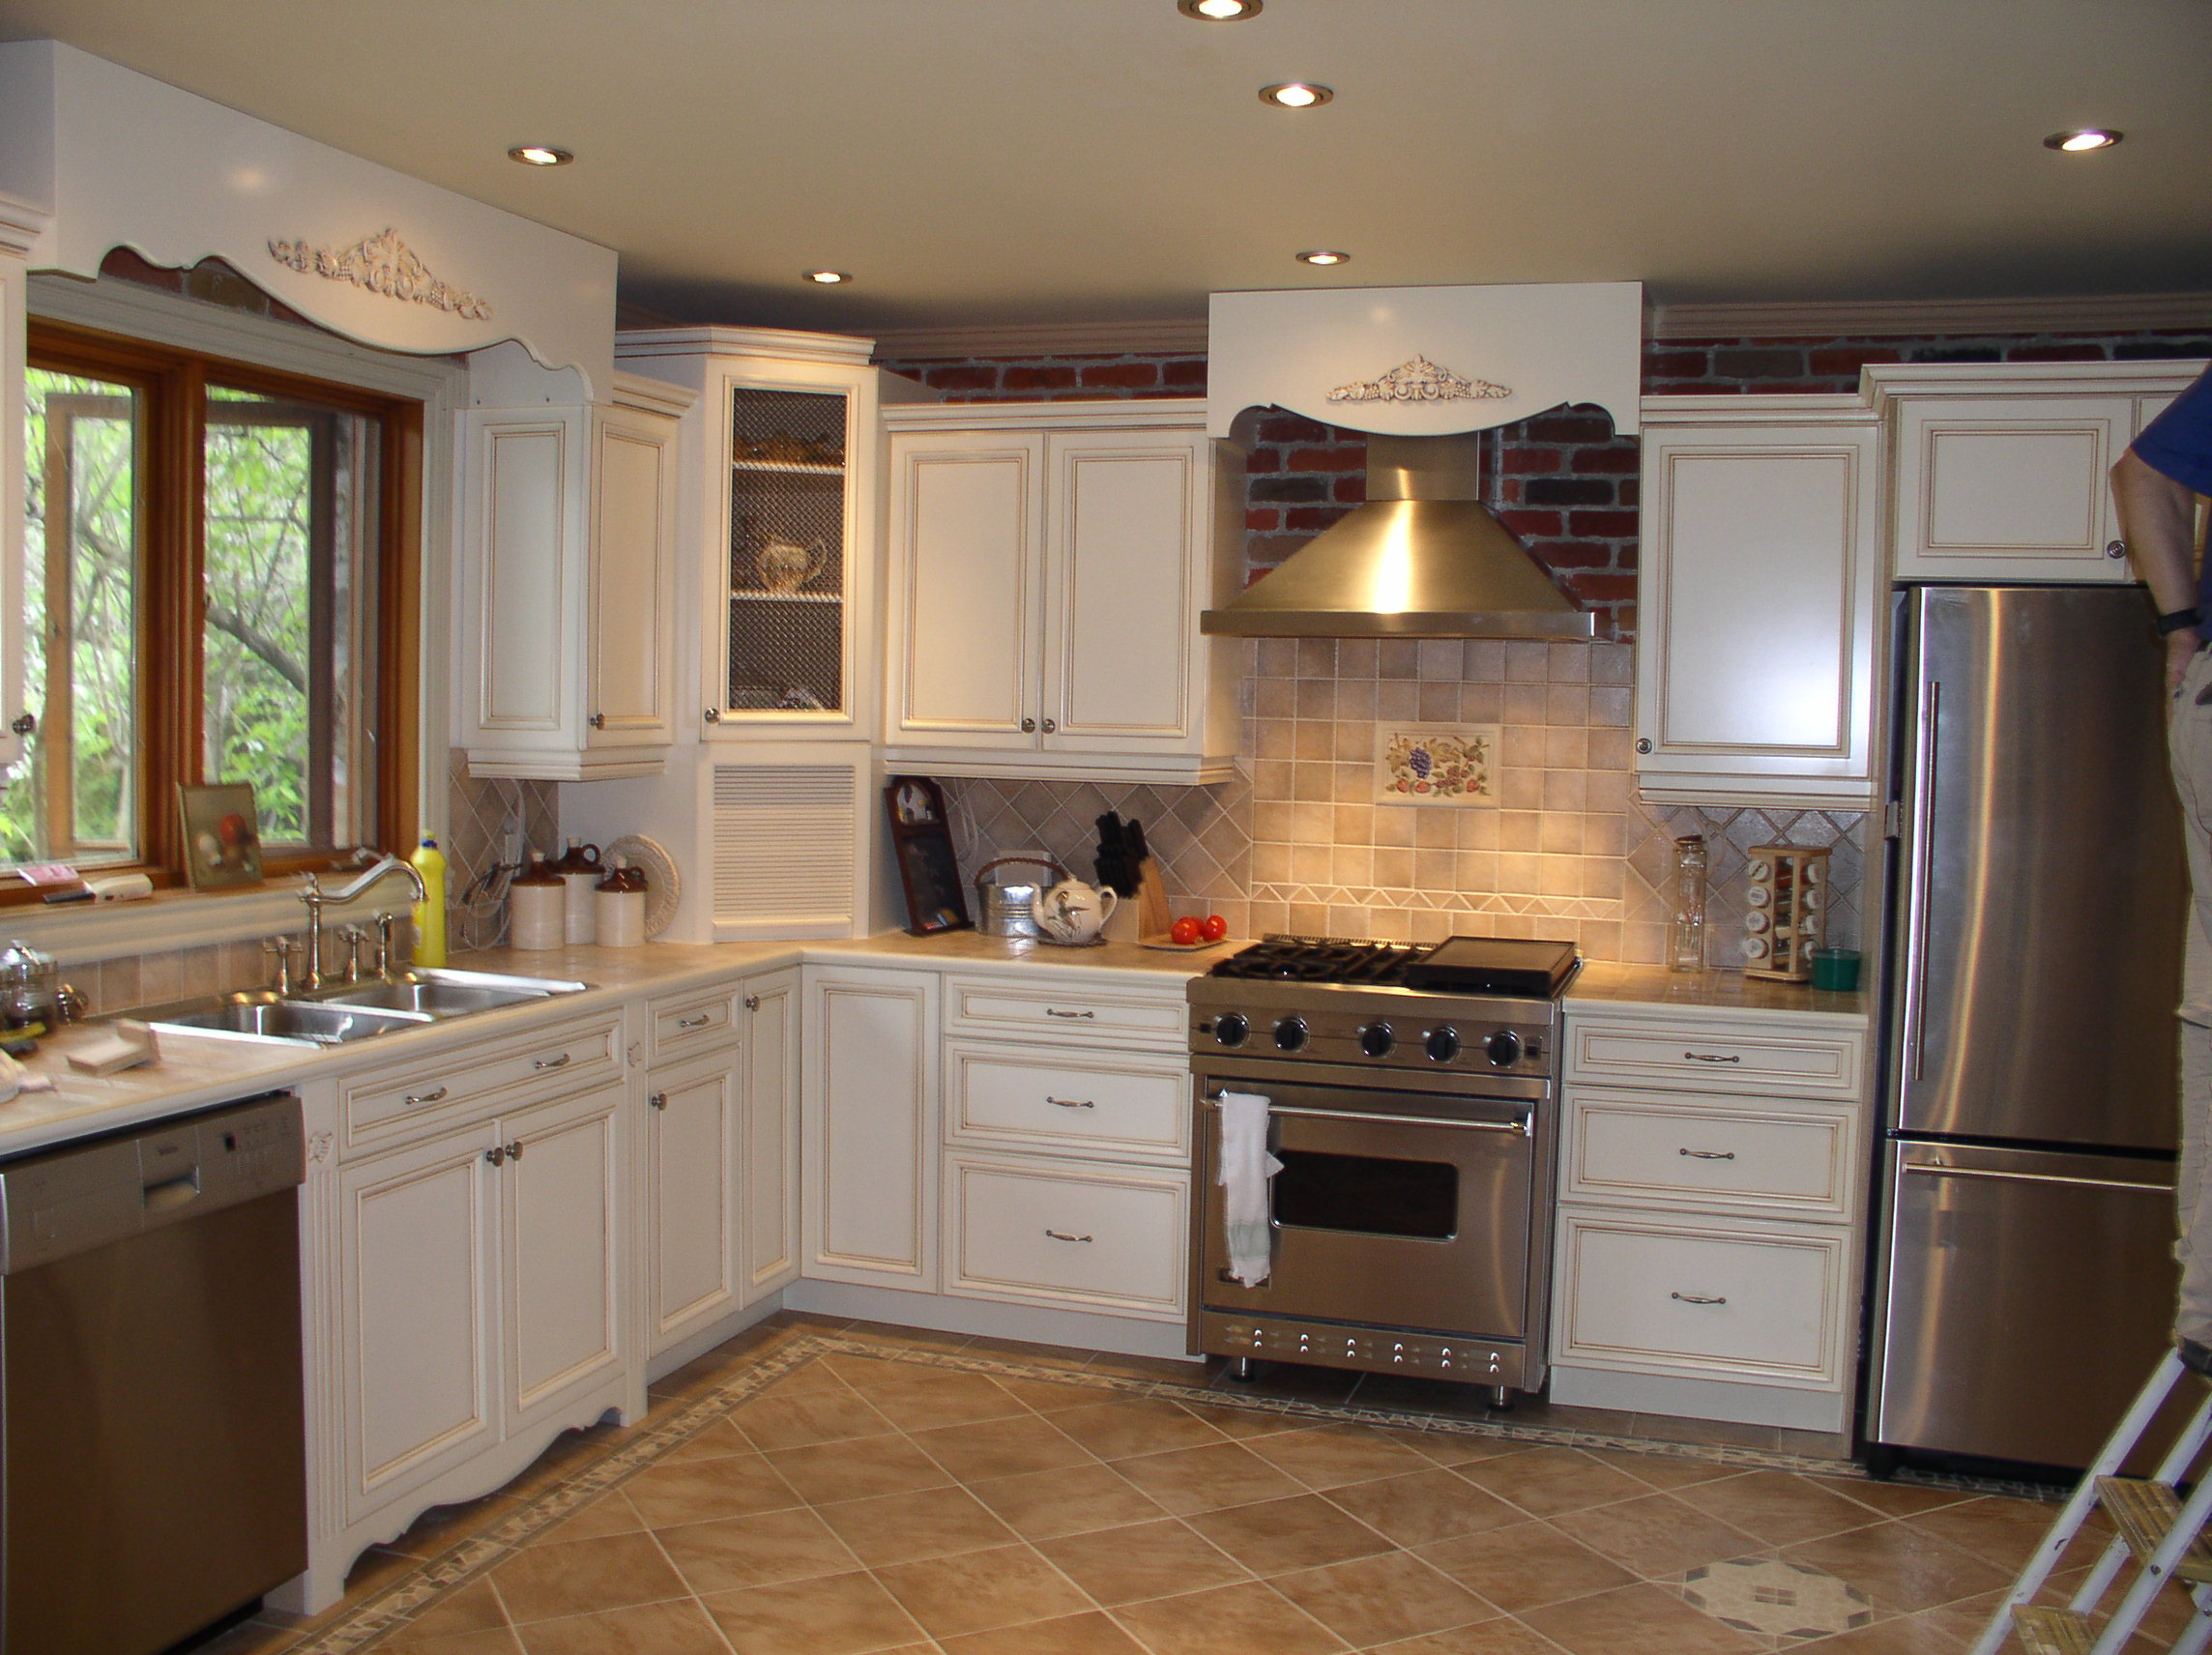 Kitchen Remodeling Ideas Pictures & Photos on Kitchen Remodel Ideas  id=95115